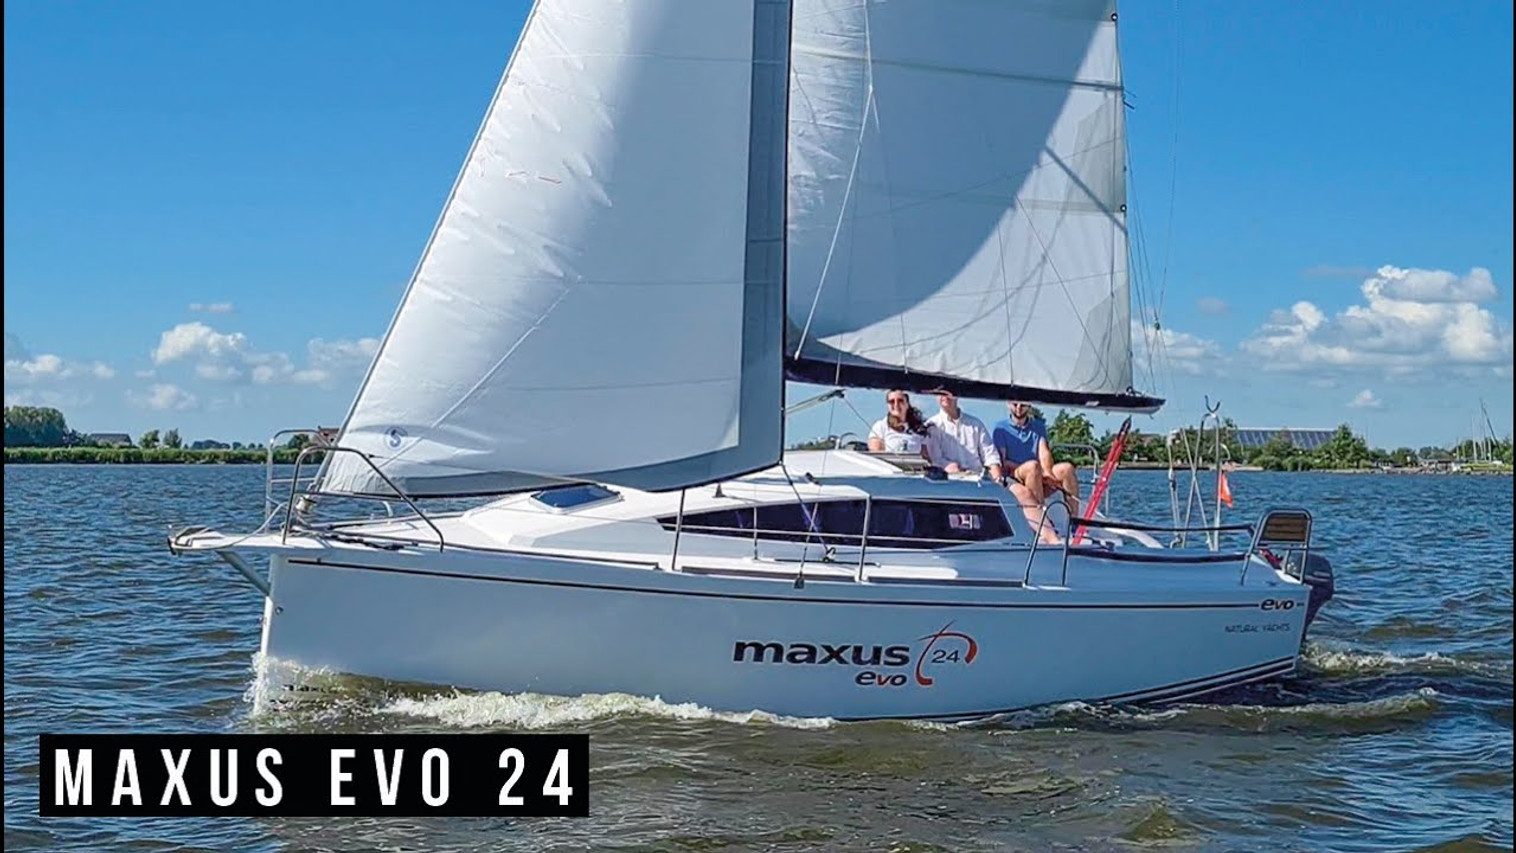 Maxus Evo 24 exterior mood video